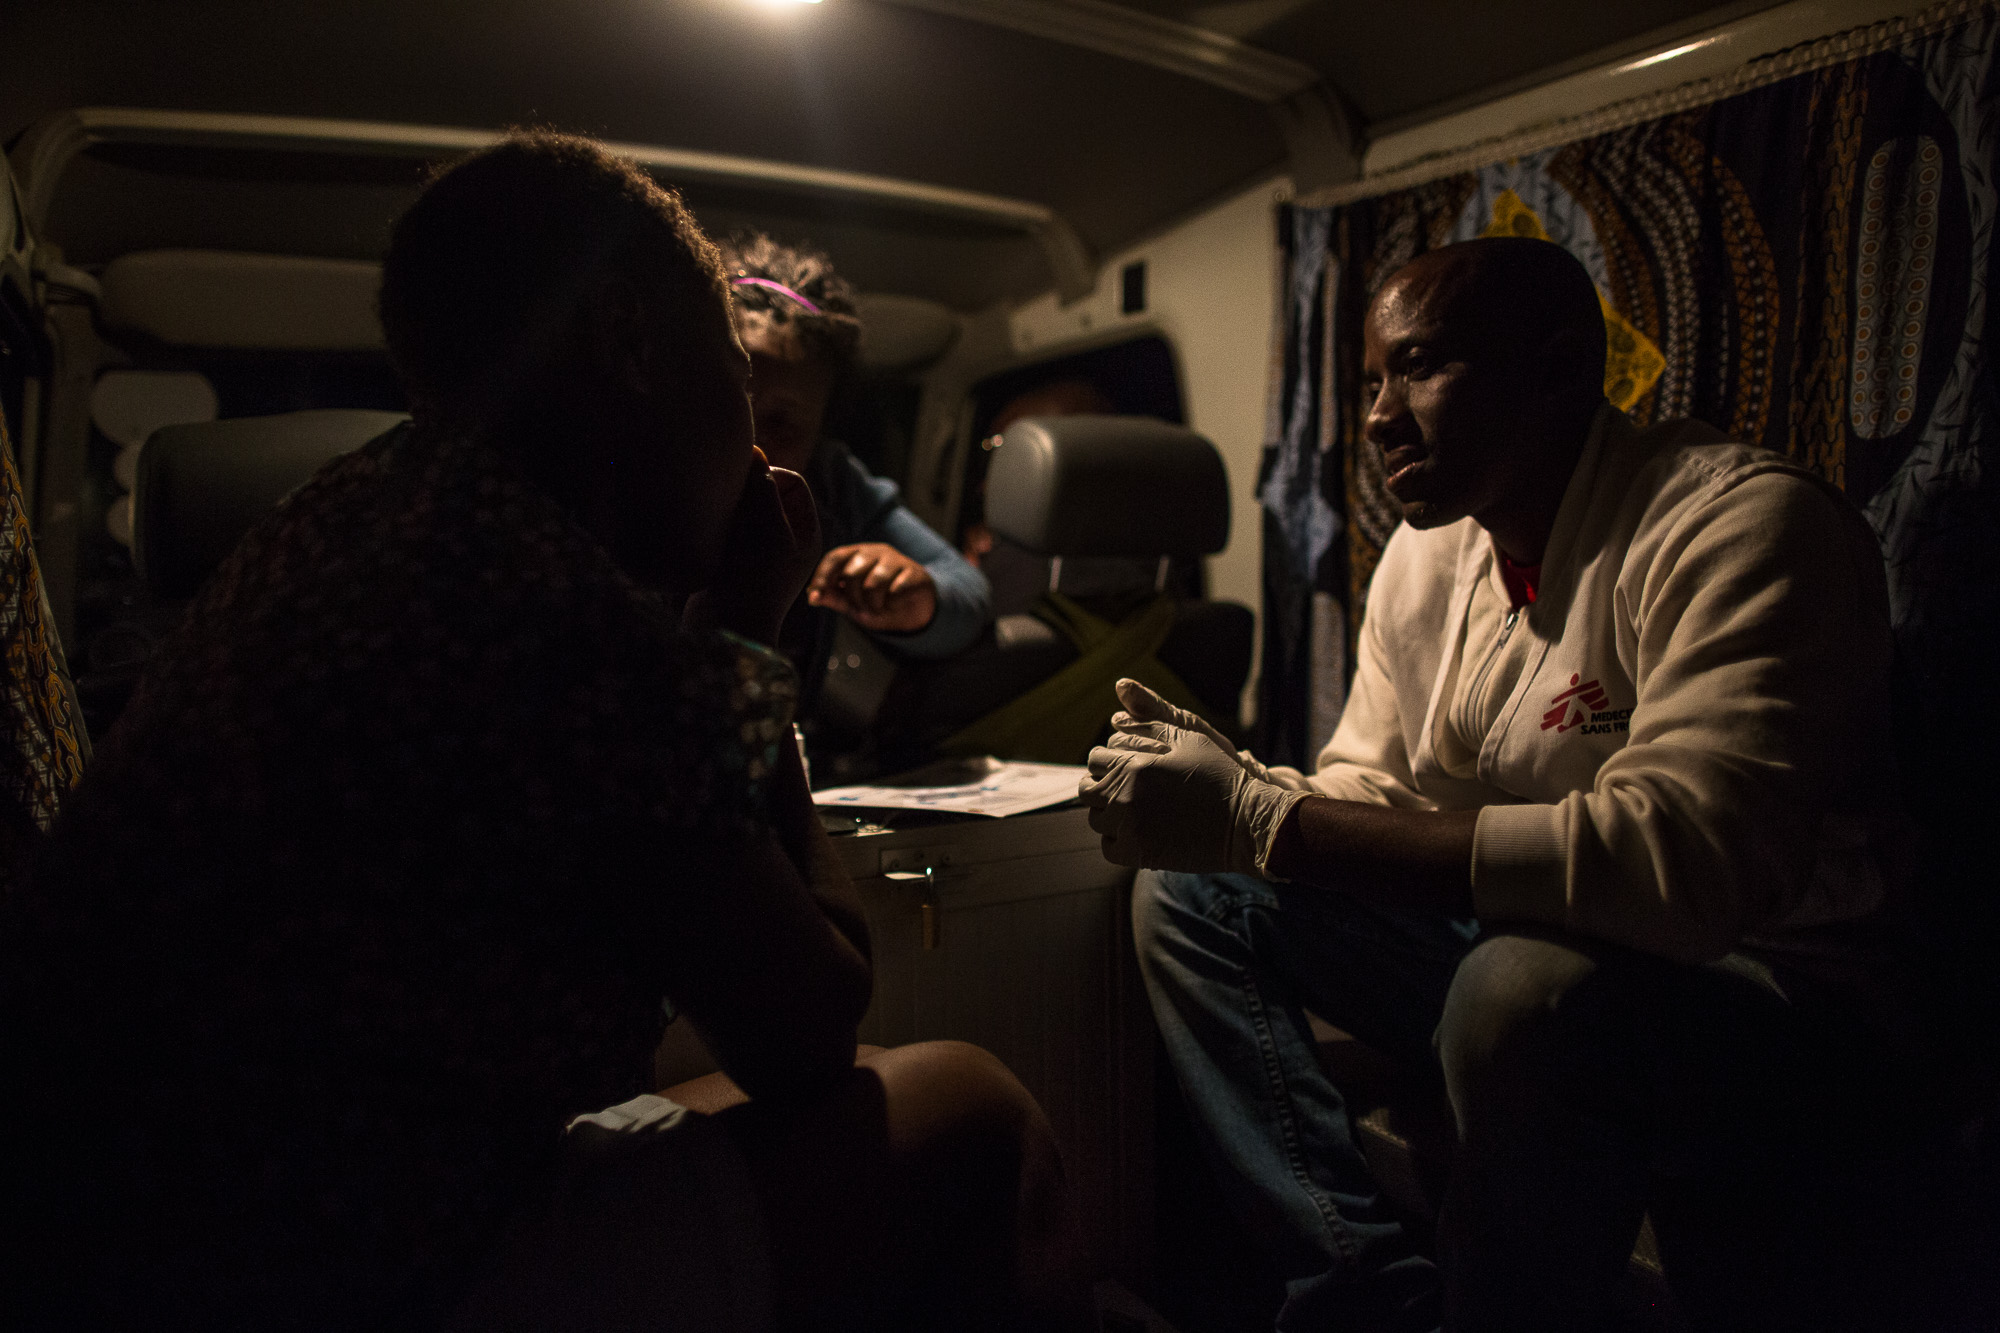 MSF peer educator, Constantino, tests a comercial sex worker for HIV, yellow fever and Syphilis while Patti, another MSF peer educator, counsels her inside of the MSF vehicle in her neighborhood. She was last tested in 2014, but this is the first time she's been tested by MSF. This time she tested negative for HIV and yellow fever, but positive for syhpillis.